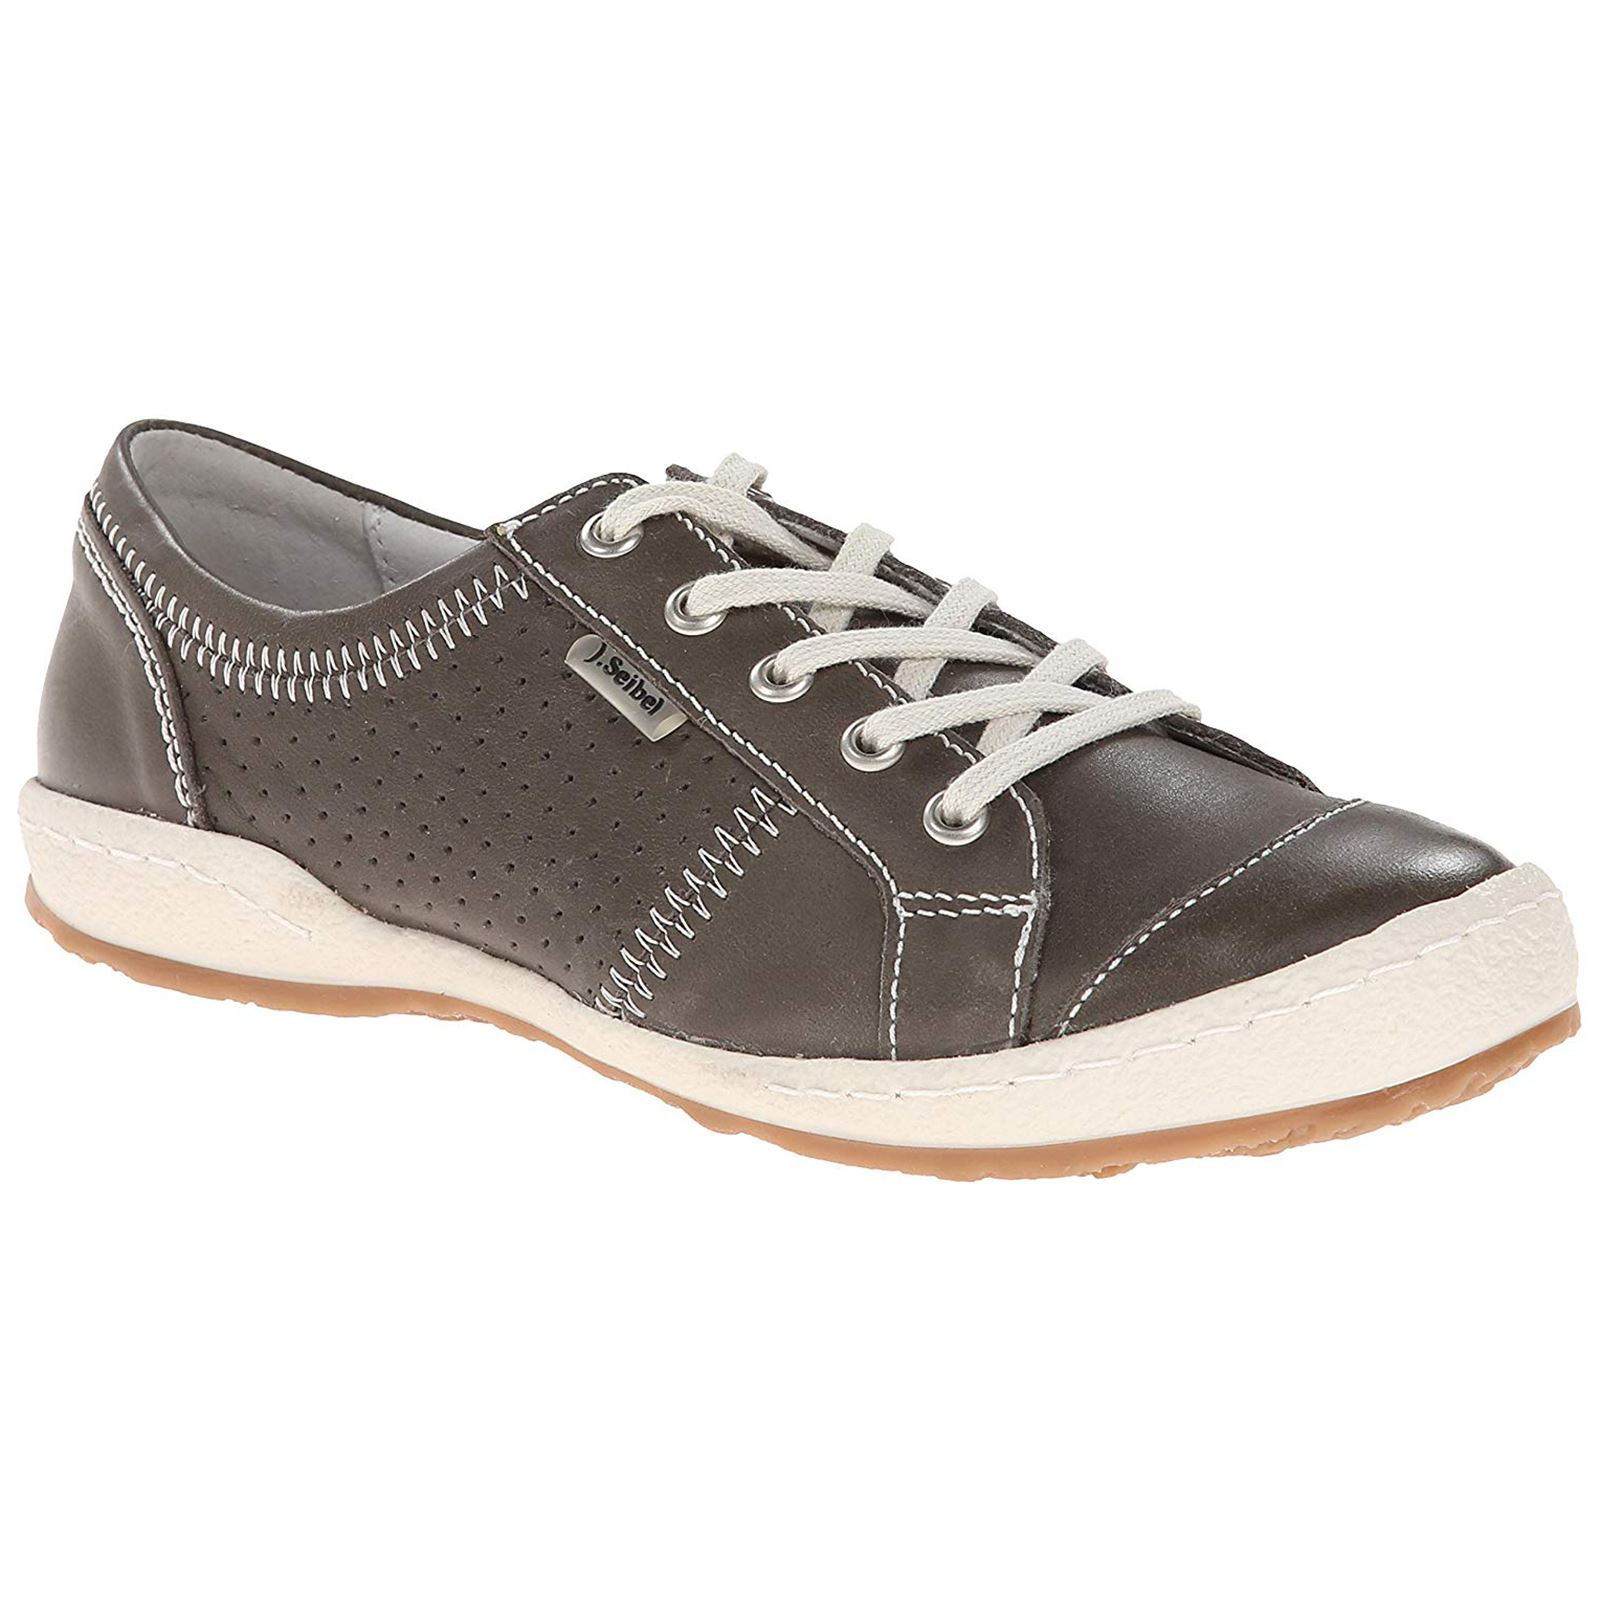 6c66ca03ab06e Details about Josef Seibel Caspian Grey Womens Low-top Trainers